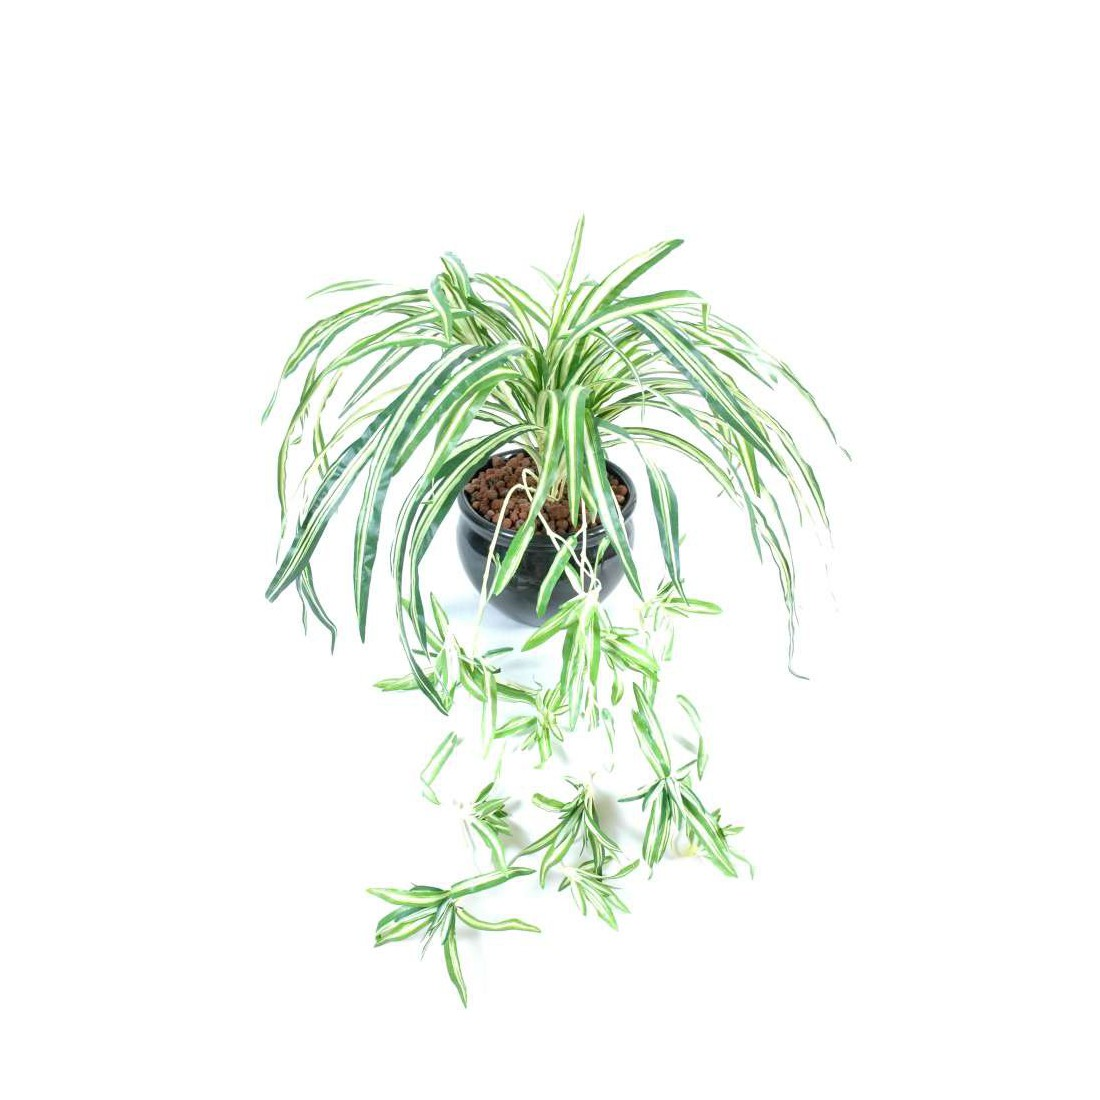 chlorophytum artificiel 55cm plantes artificielles plantes vertes artificielles reflets nature lyon. Black Bedroom Furniture Sets. Home Design Ideas